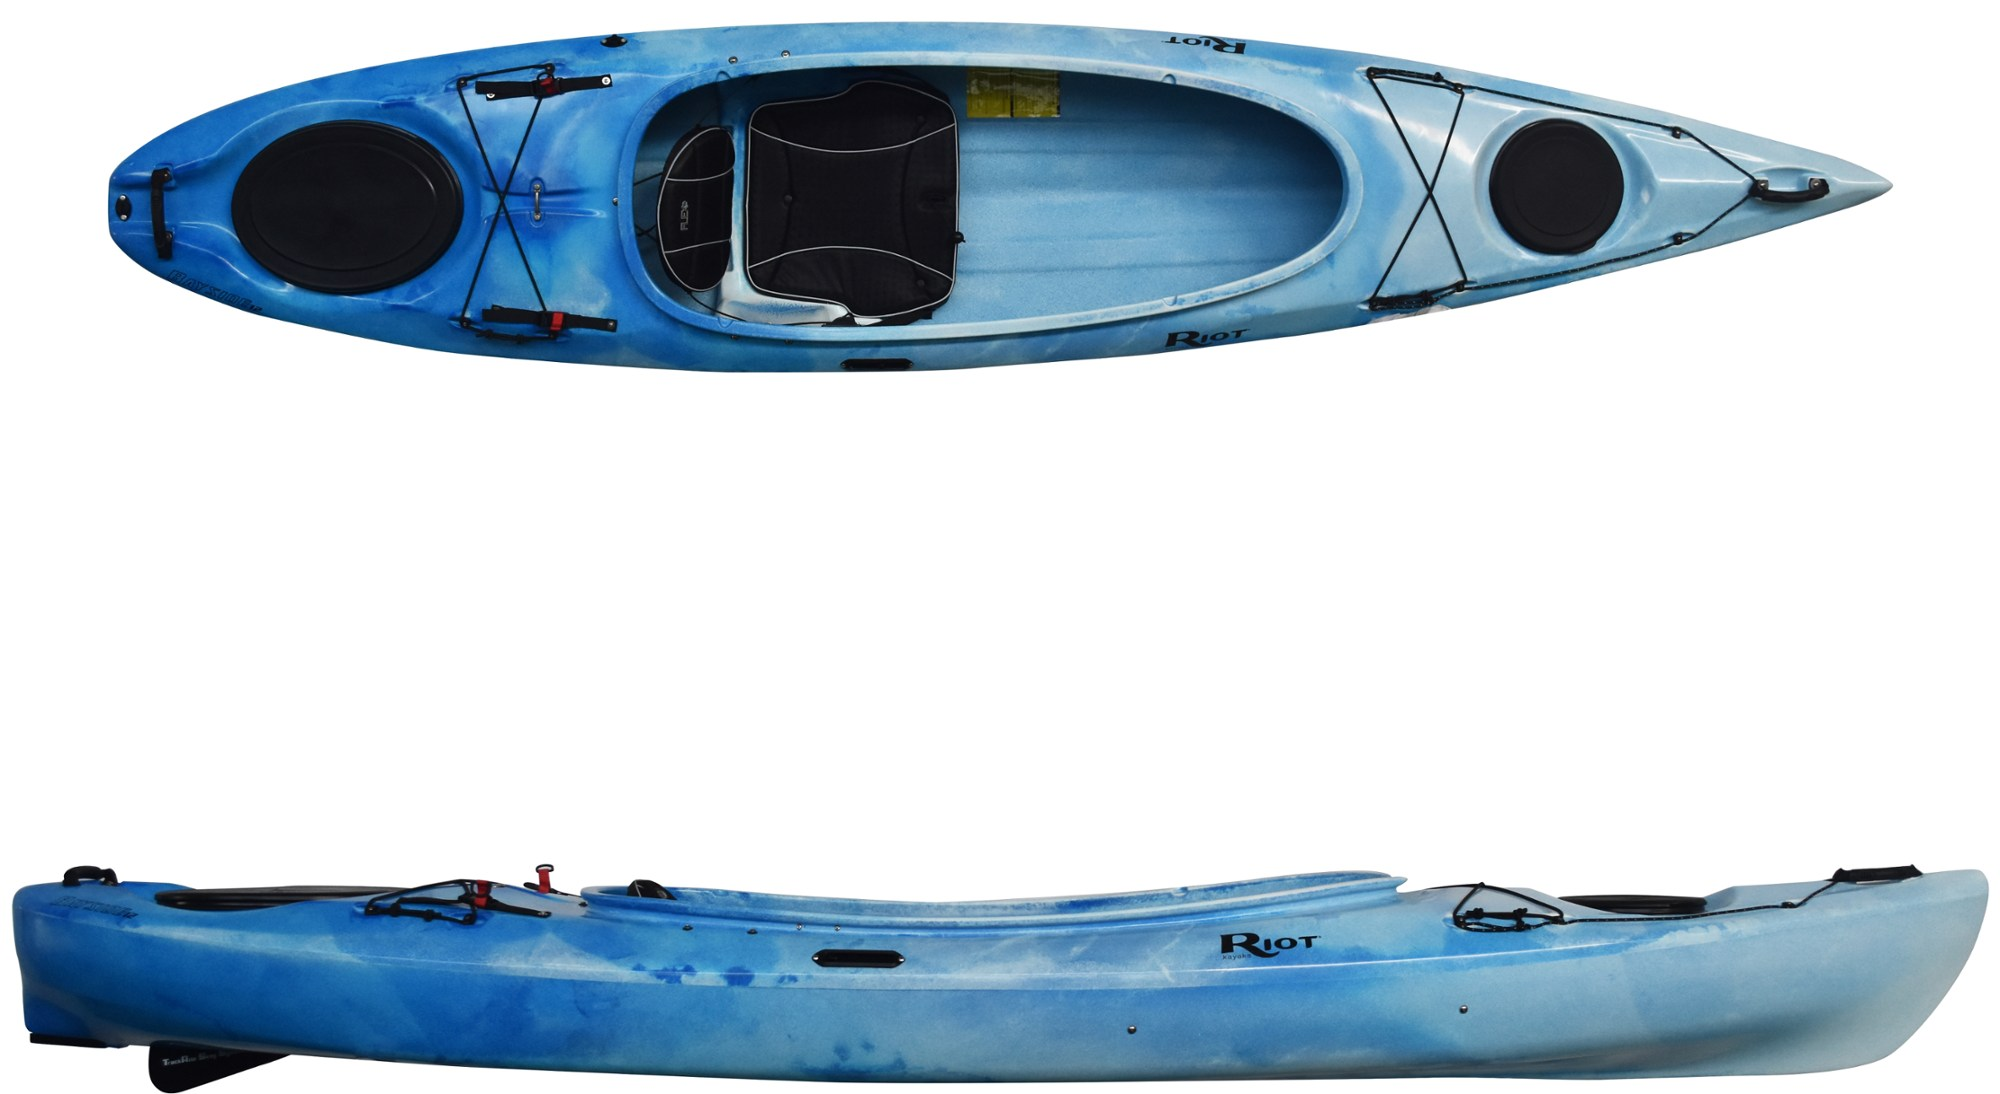 Riot Kayaks Bayside 12, 12ft sit inside touring kayak with skeg